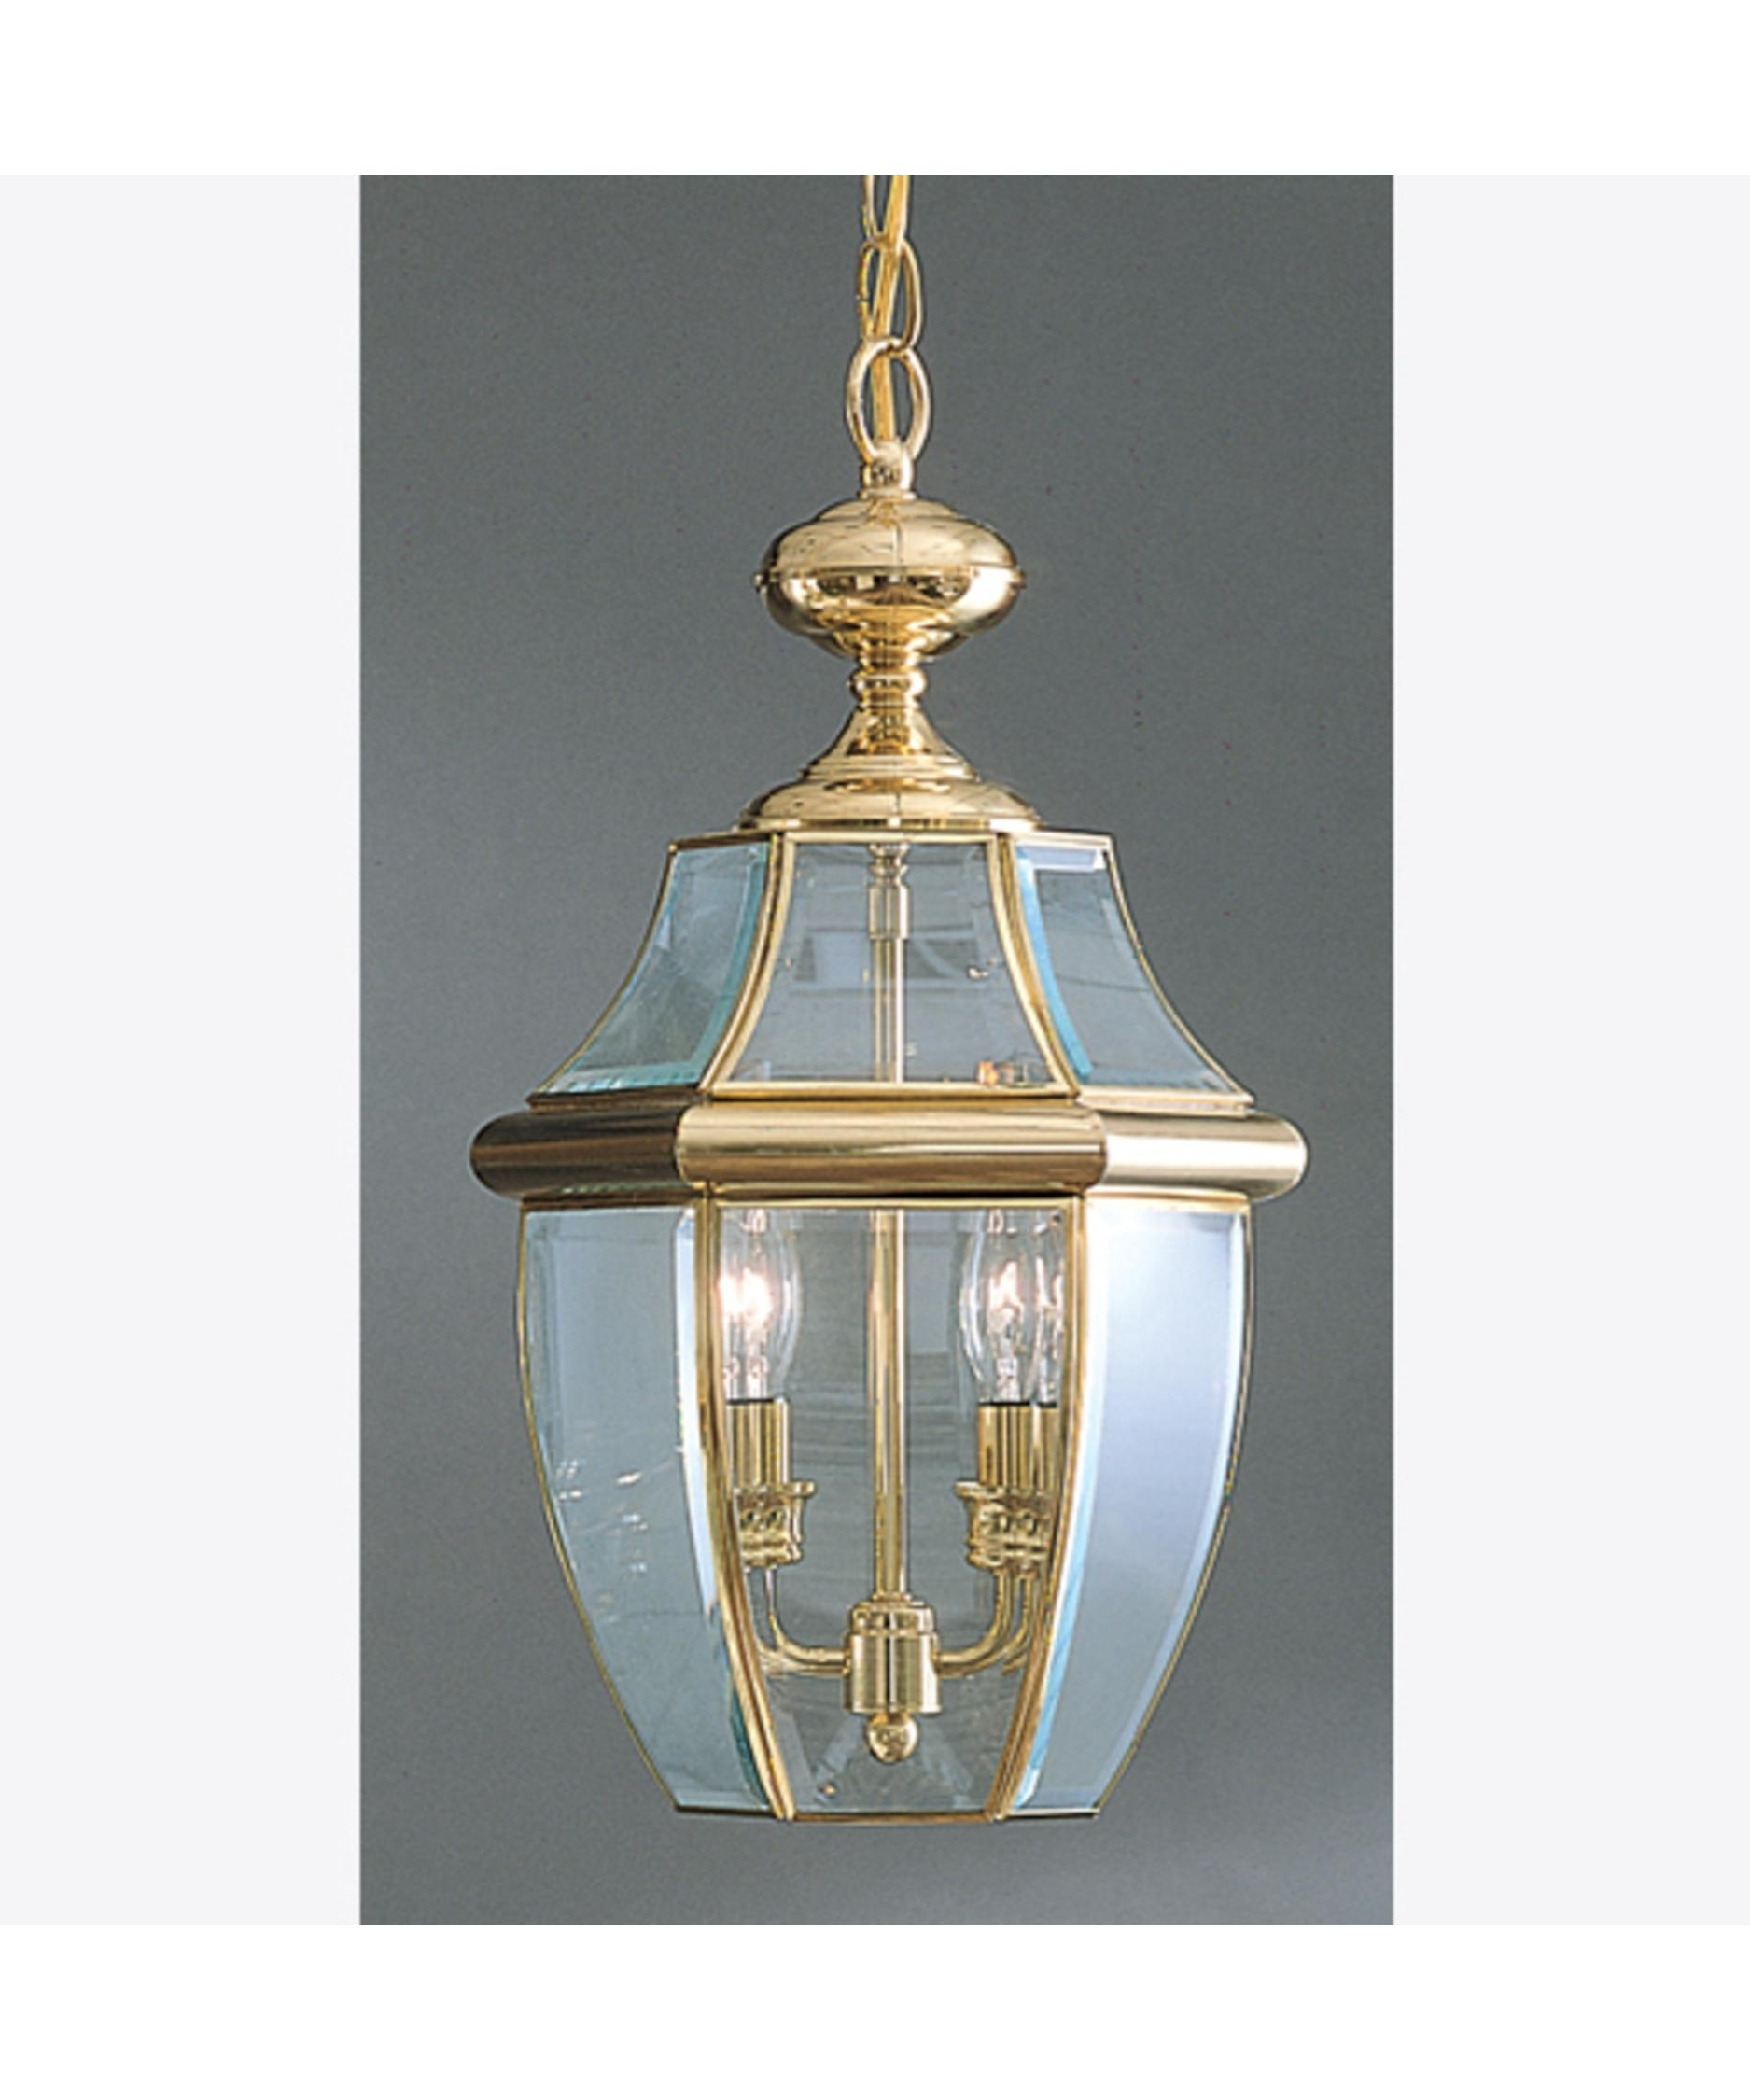 Recent Quoizel Outdoor Hanging Lights Pertaining To Quoizel Ny1178 Newbury 10 Inch Wide 2 Light Outdoor Hanging Lantern (View 16 of 20)